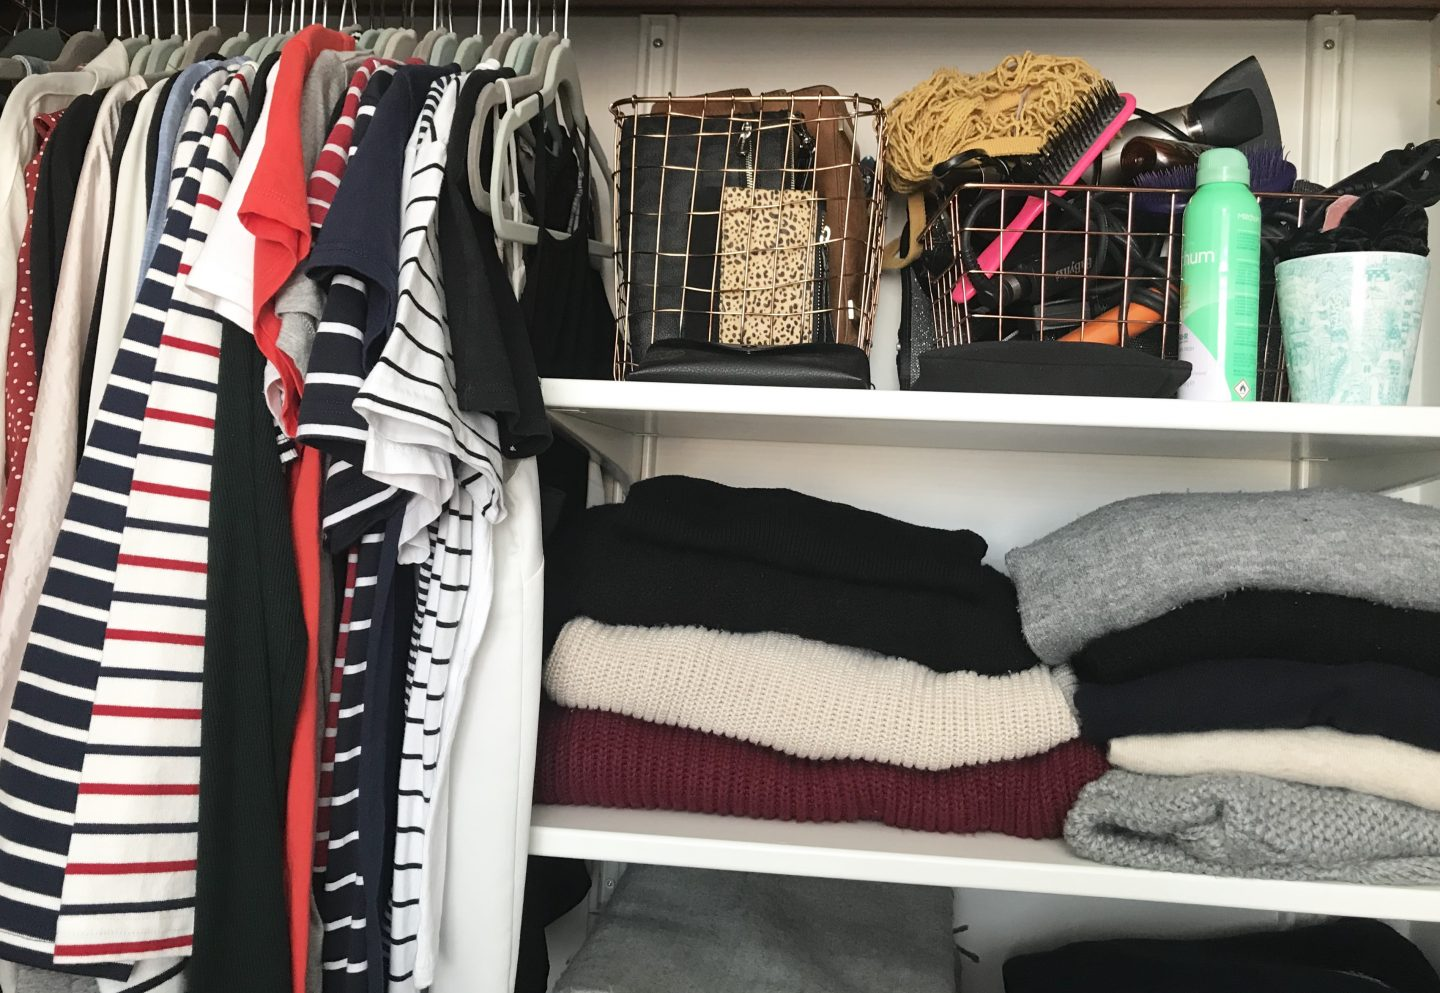 Overview of wardrobe storage